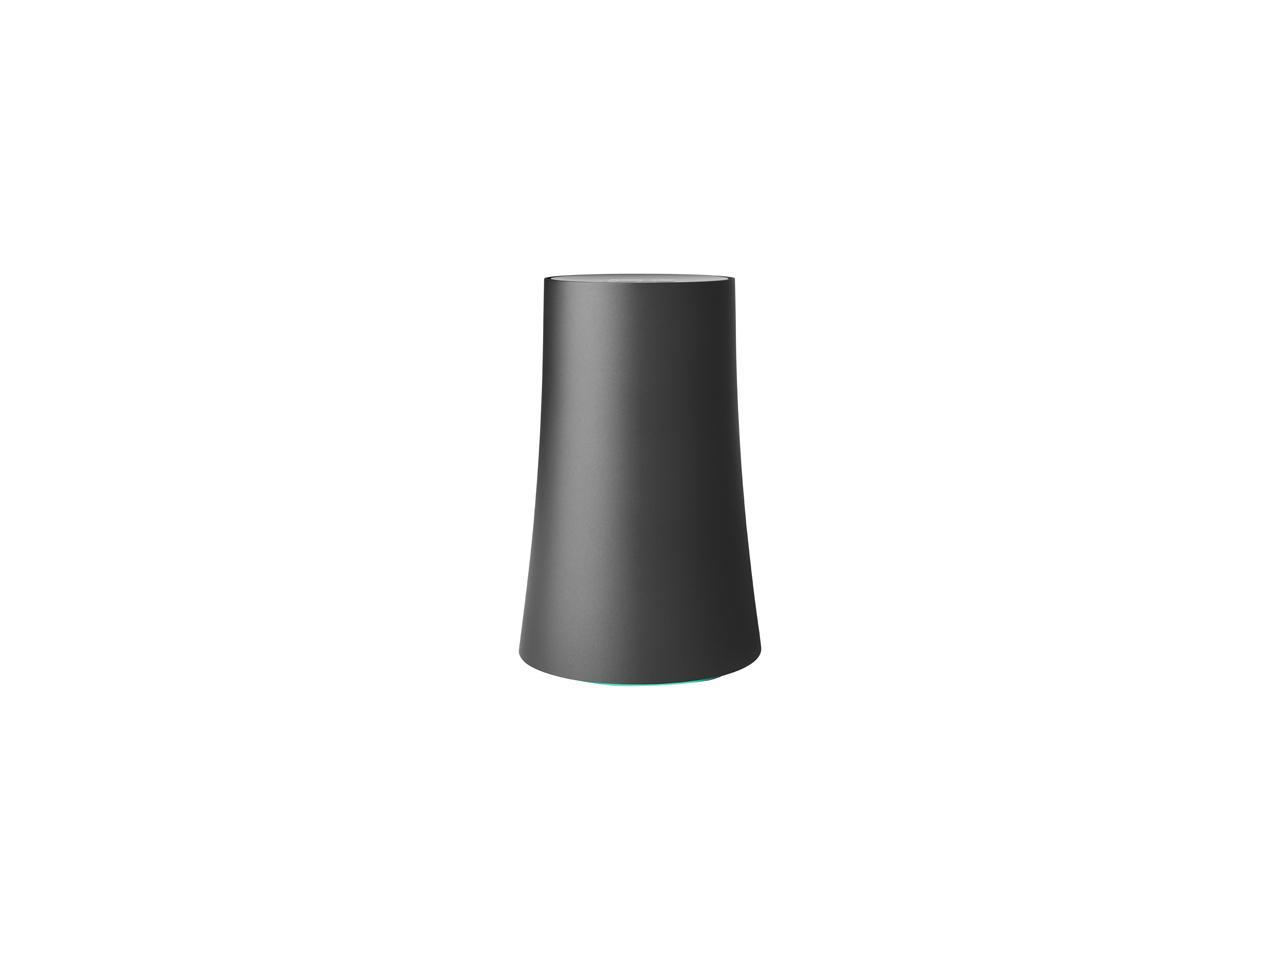 Asus – OnHub Wireless AC1900 Router with NAT Firewall